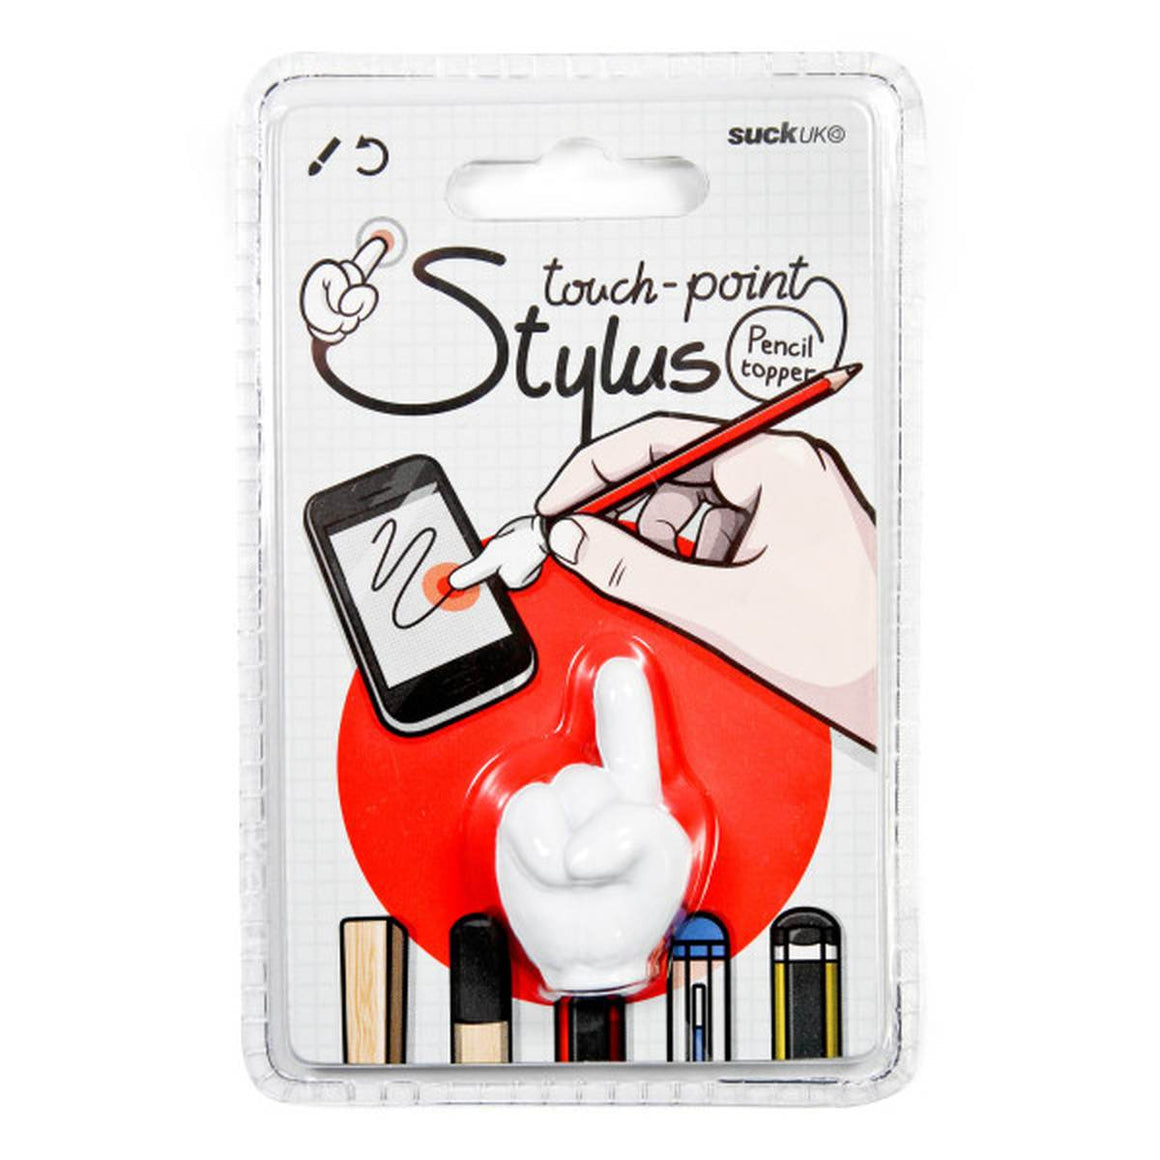 "A touchscreen stylus in the style of an attachable pen topper. Shaped like a white cartoon hand featuring a pointed finger and clenched fist. Show in its packaging which features the text ""Touch point Stylus Pencil Toppper"""